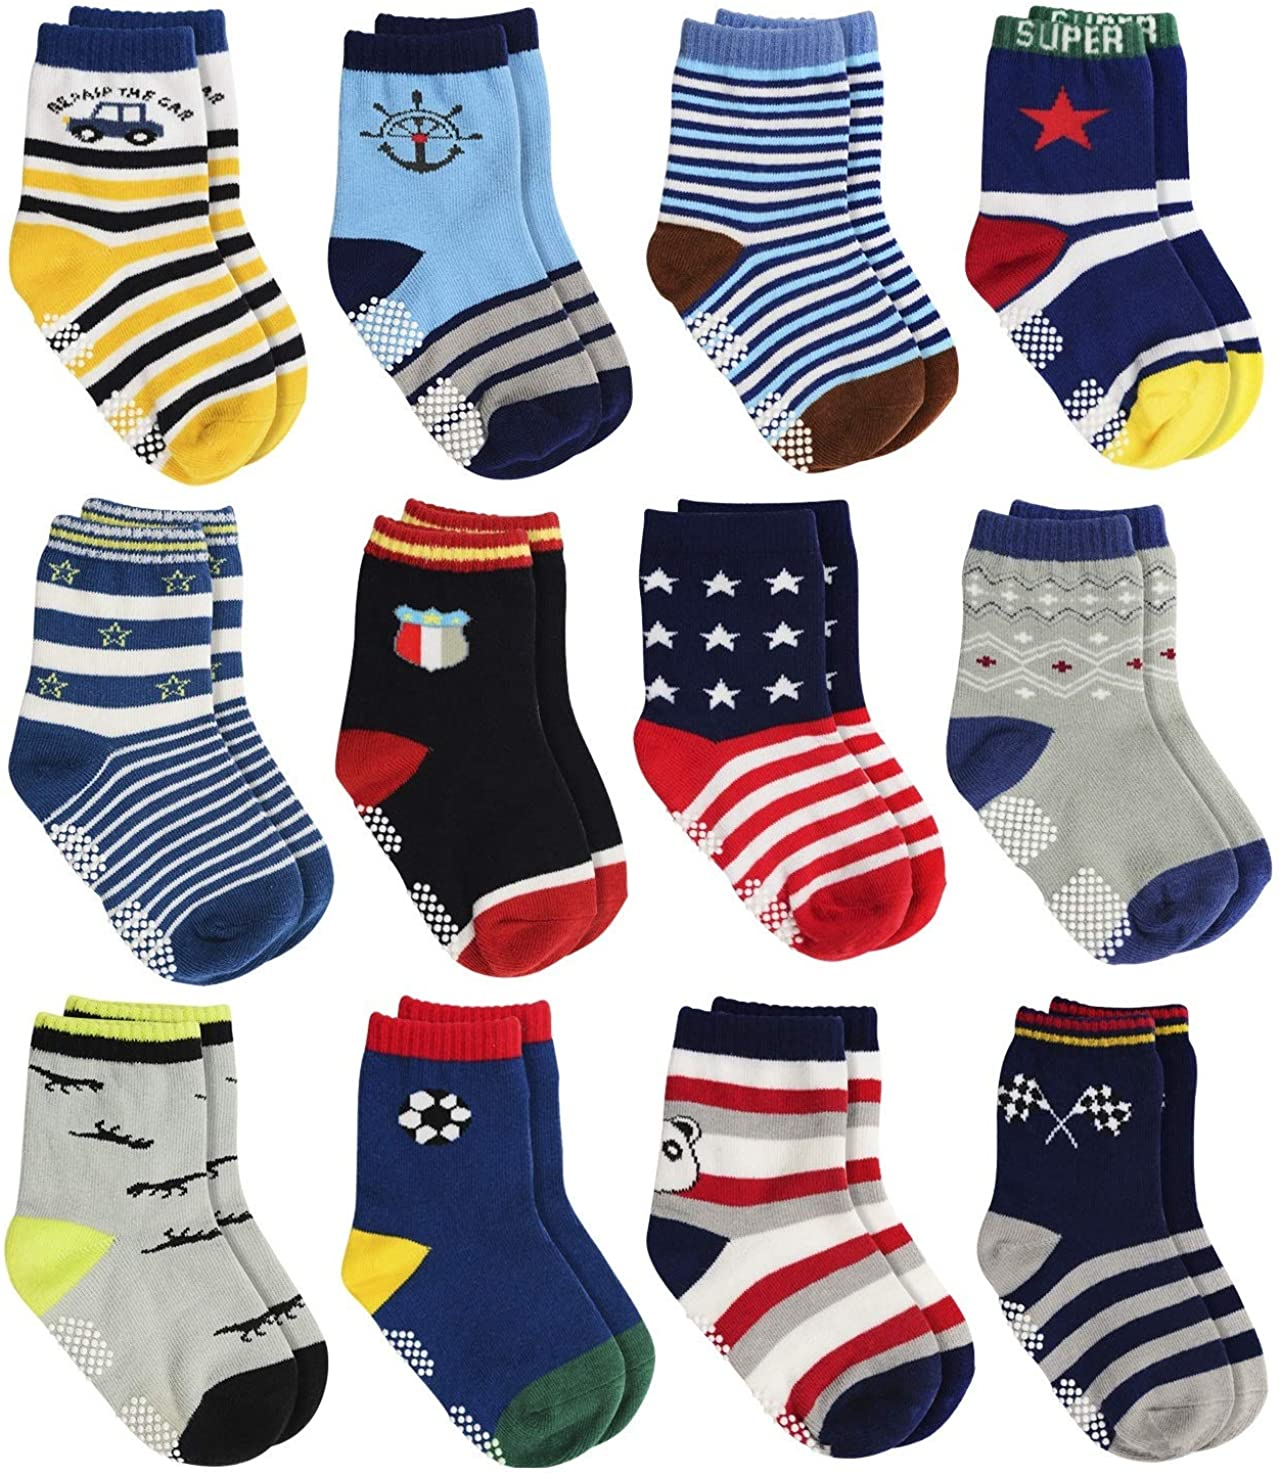 LAISOR Anti Slip Cotton Crew Socks with Grips For Kids Toddlers Baby Boys